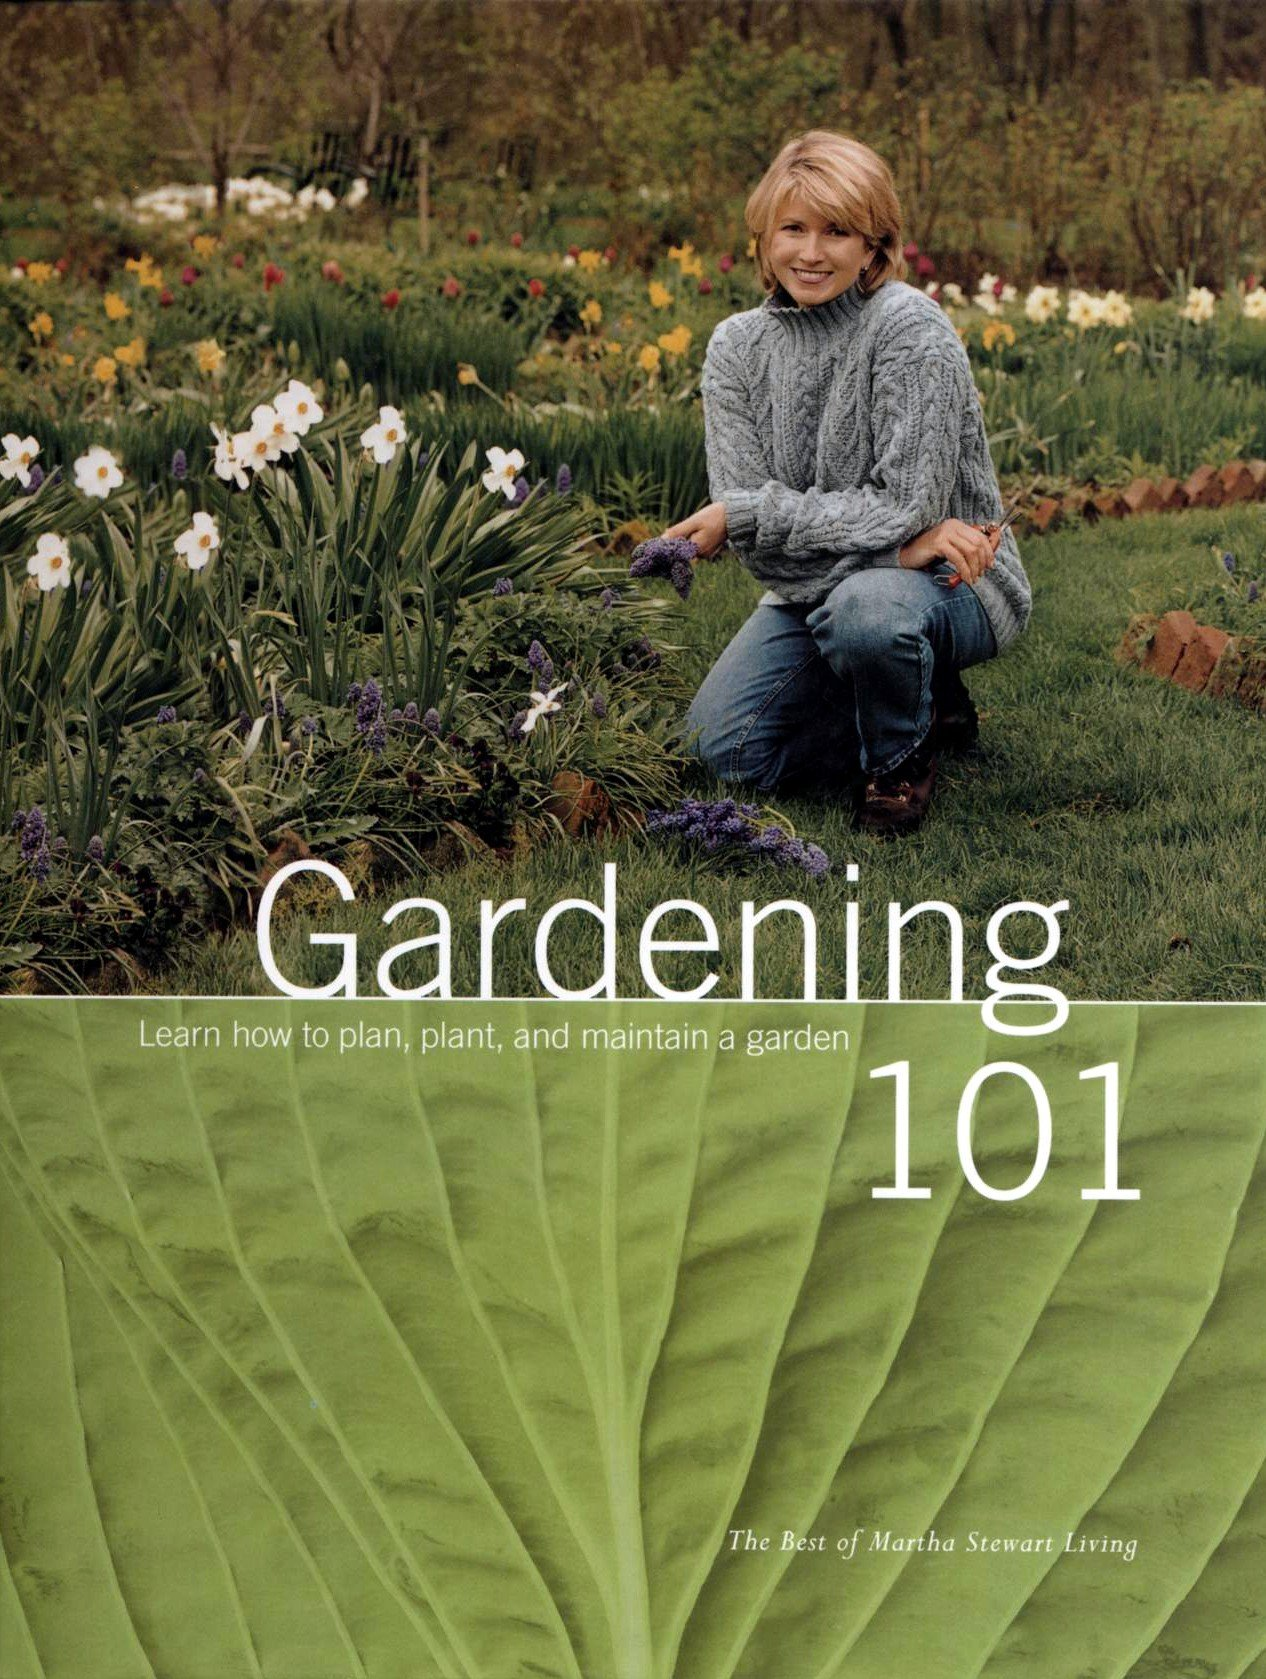 how to plan a garden. Gardening 101: Learn How To Plan, Plant, And Maintain A Garden (The Best Of Martha Stewart Living): Stewart, Margaret Roach, Douglas Brenner: Plan